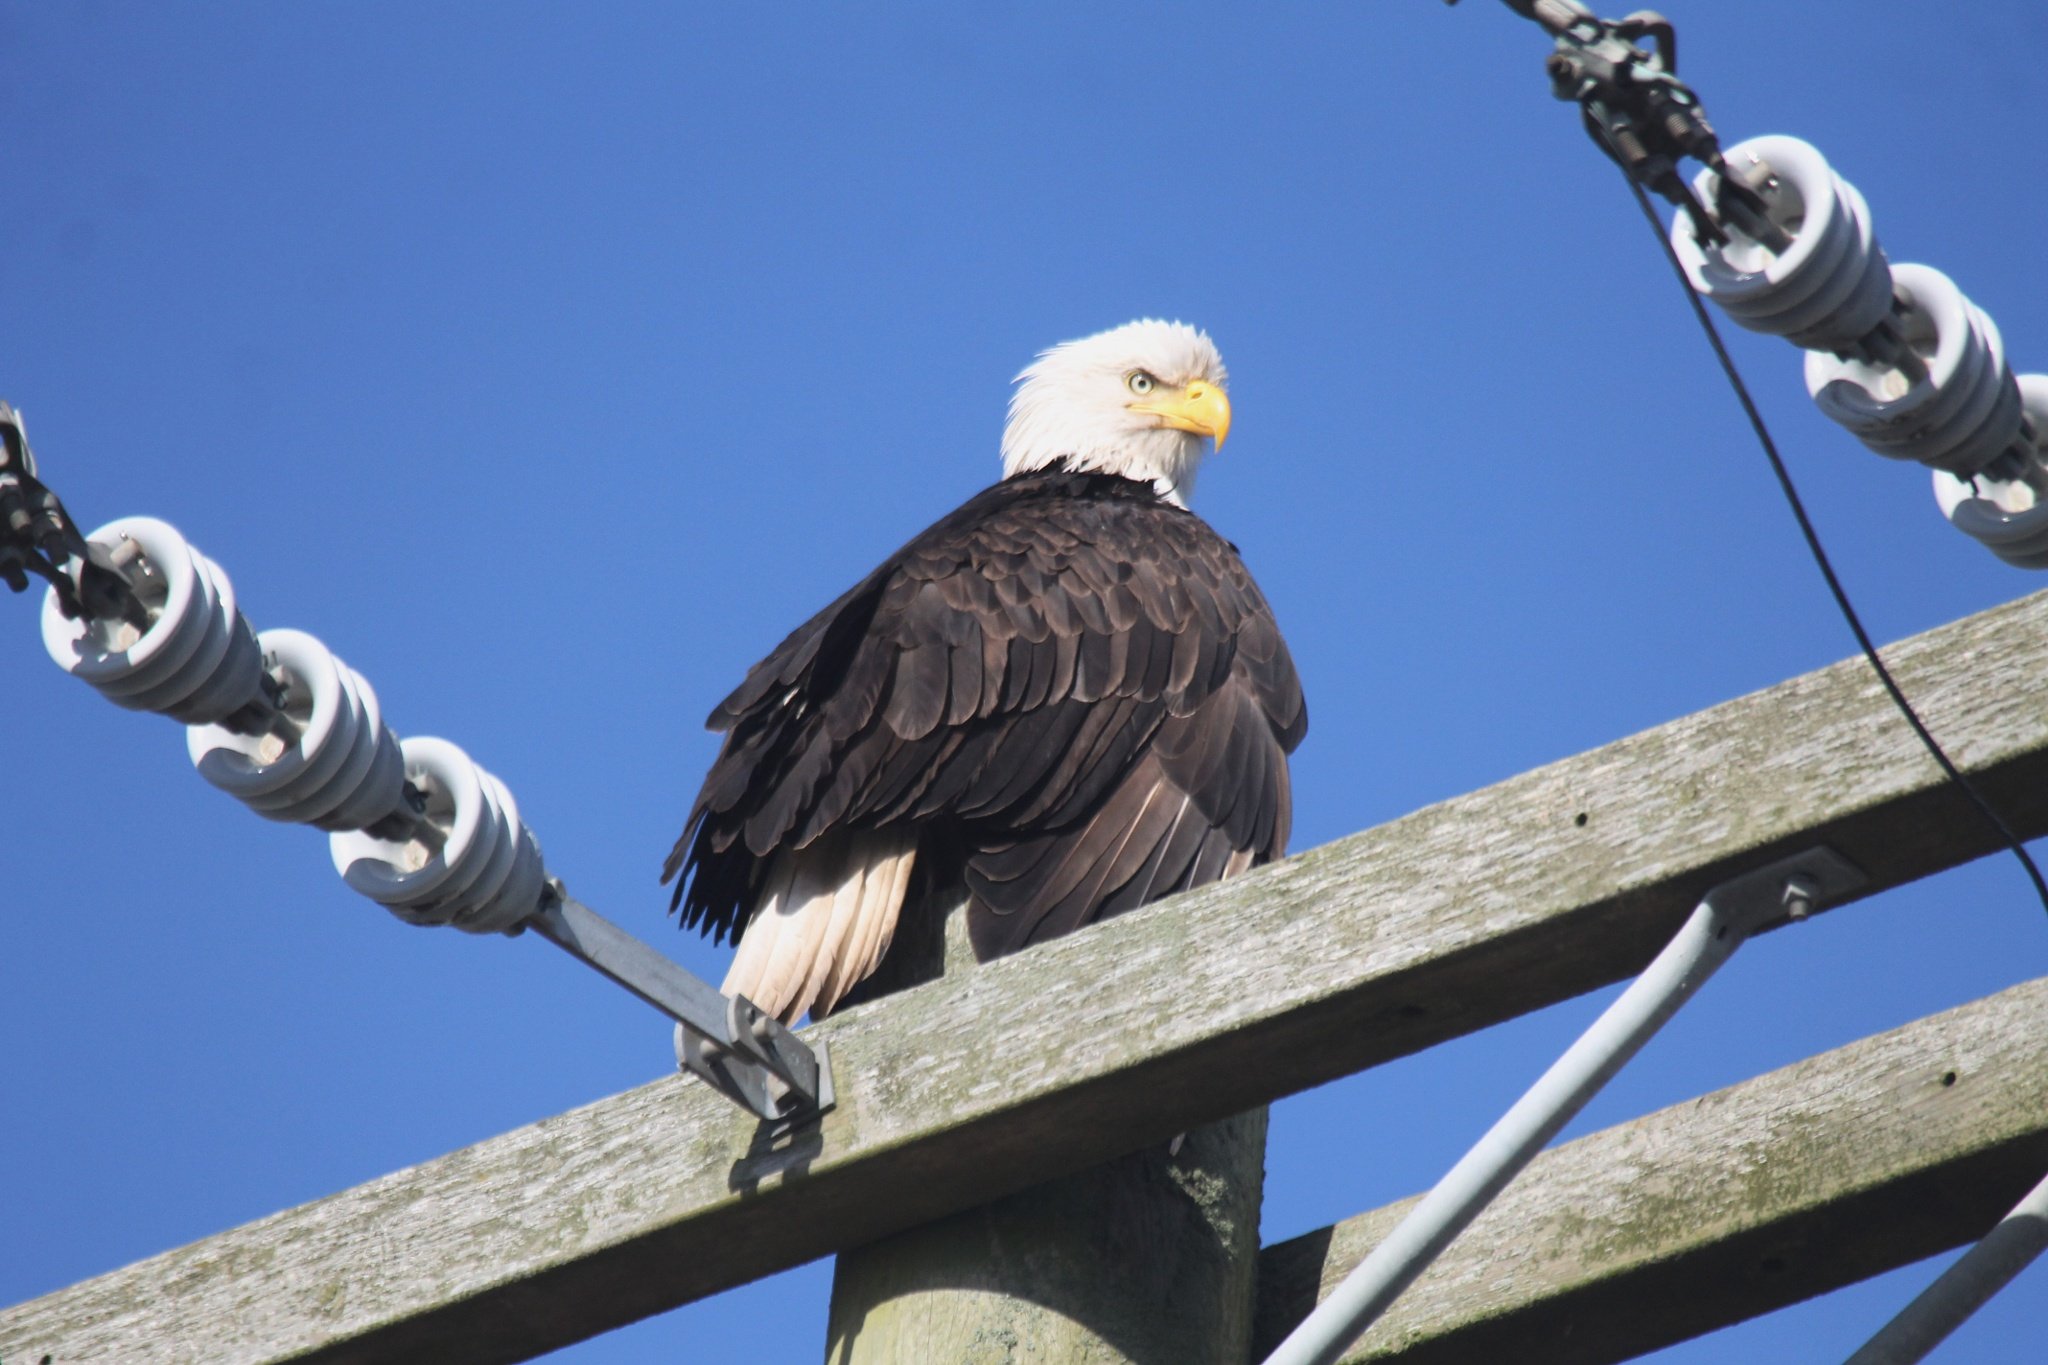 Angry Bald Eagle by henrywall63